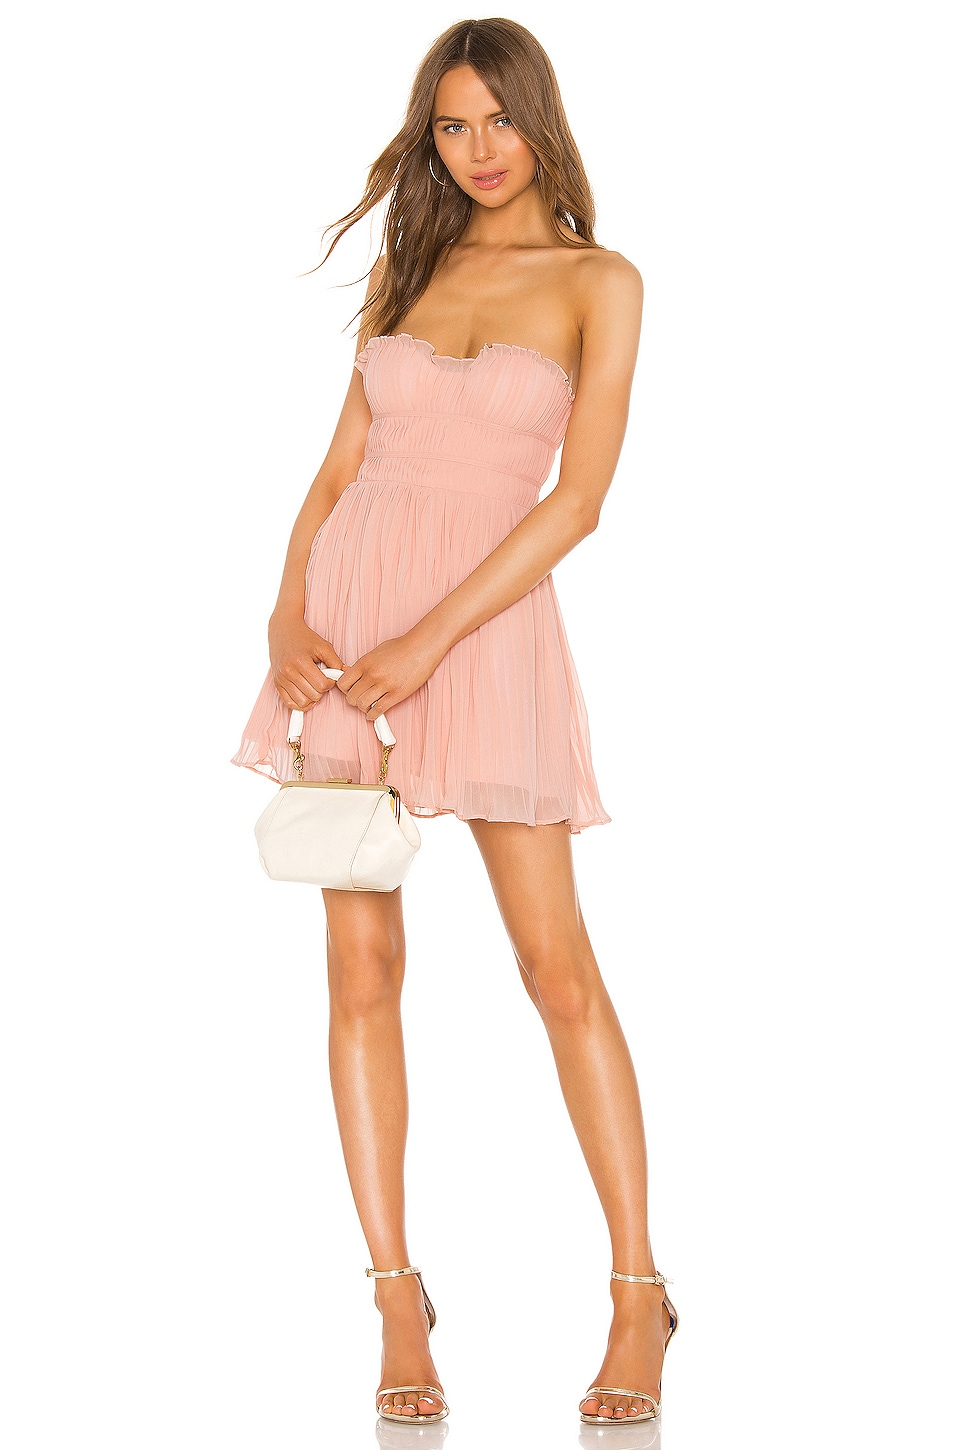 NBD Josephine Mini Dress in Blush Nude